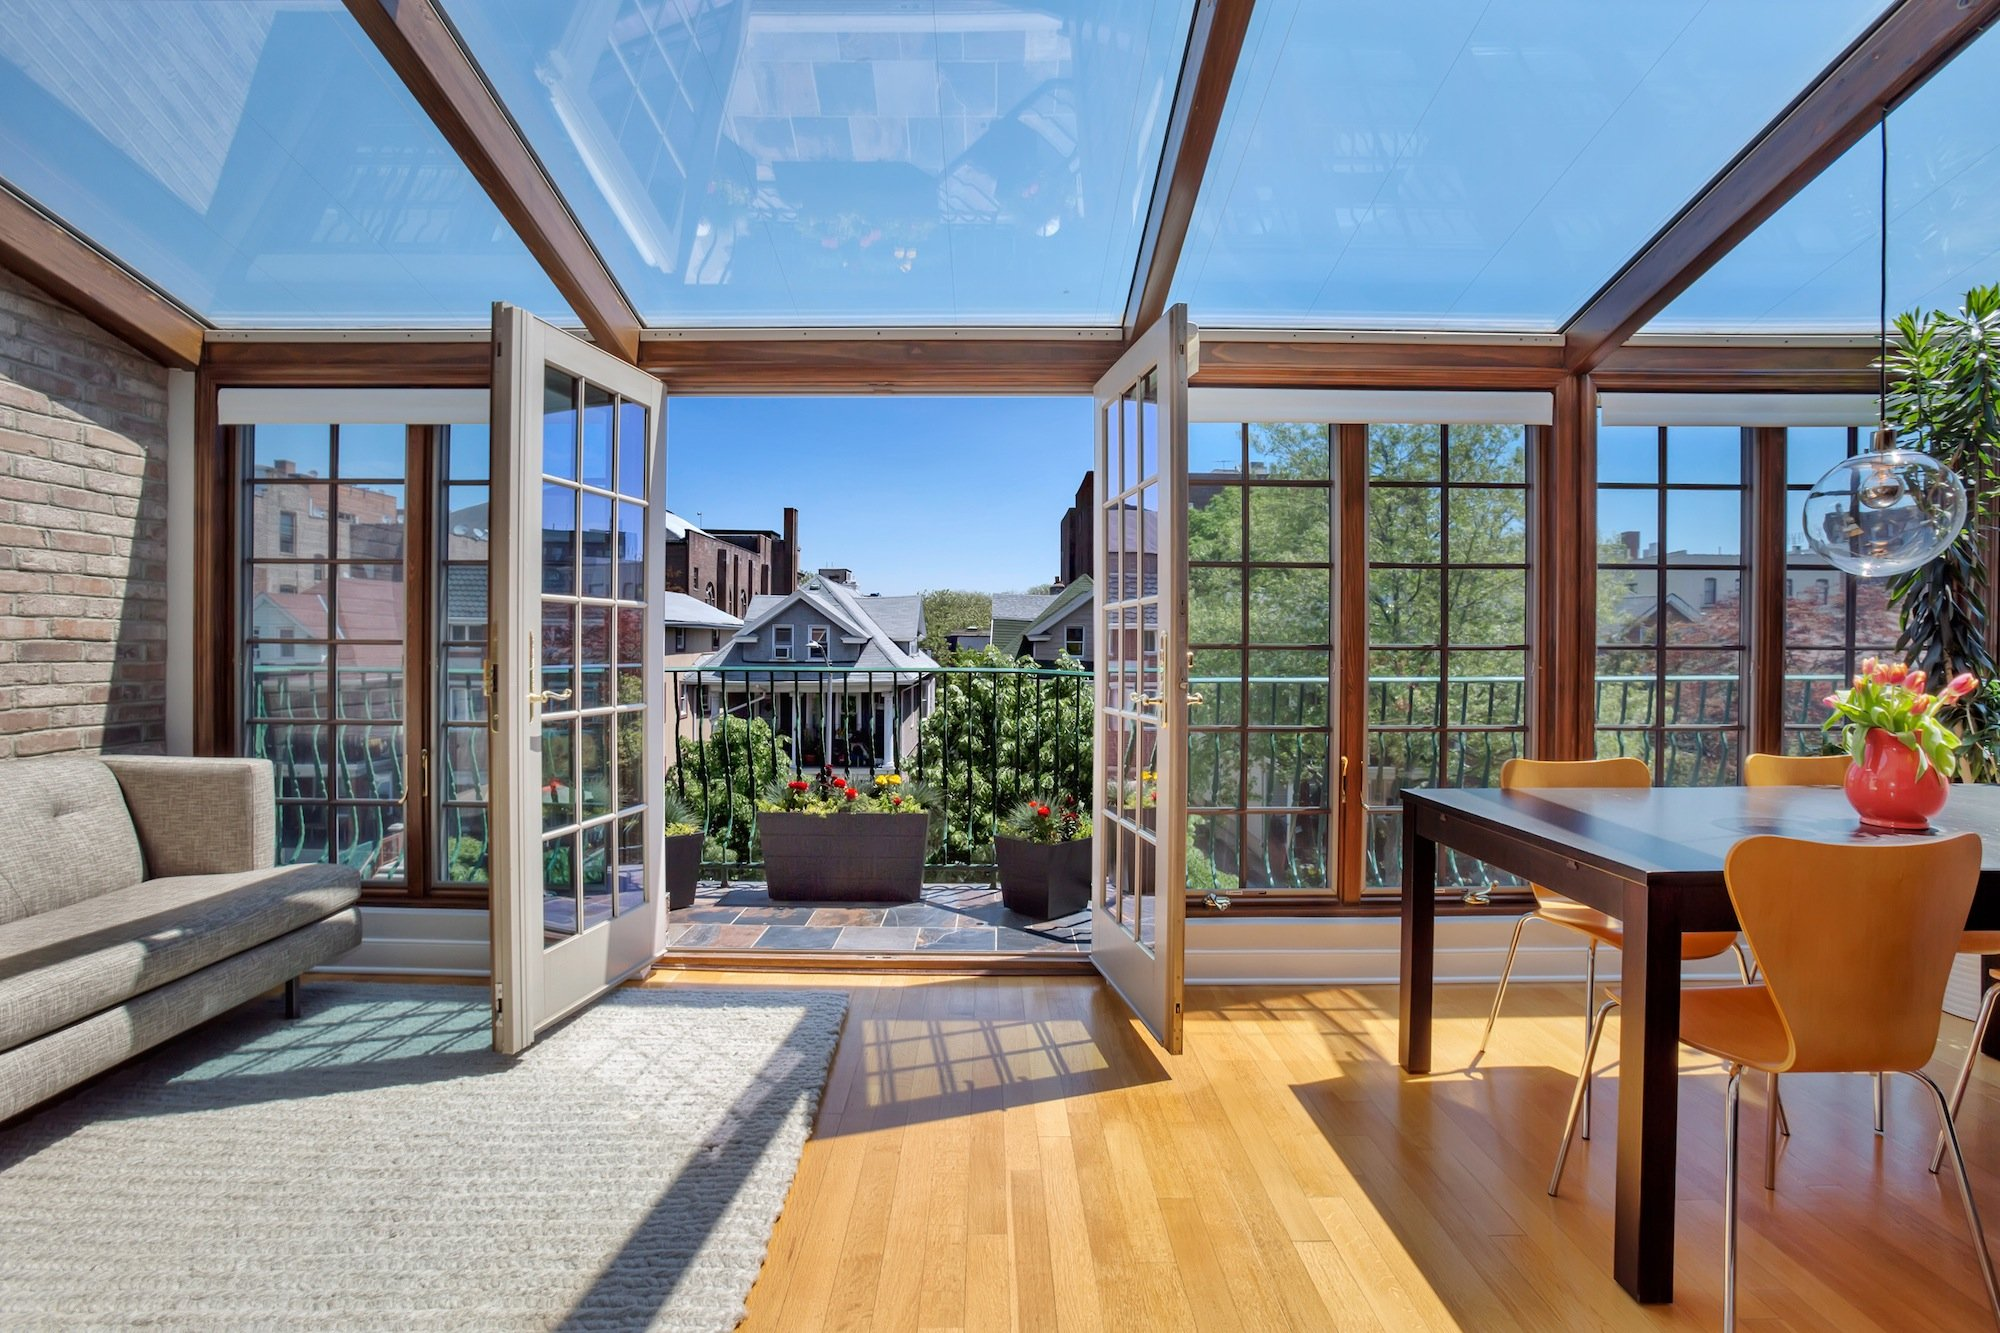 Attractive A Mini Solarium Brings Serious Sunlight To This $835K Kensington Apartment